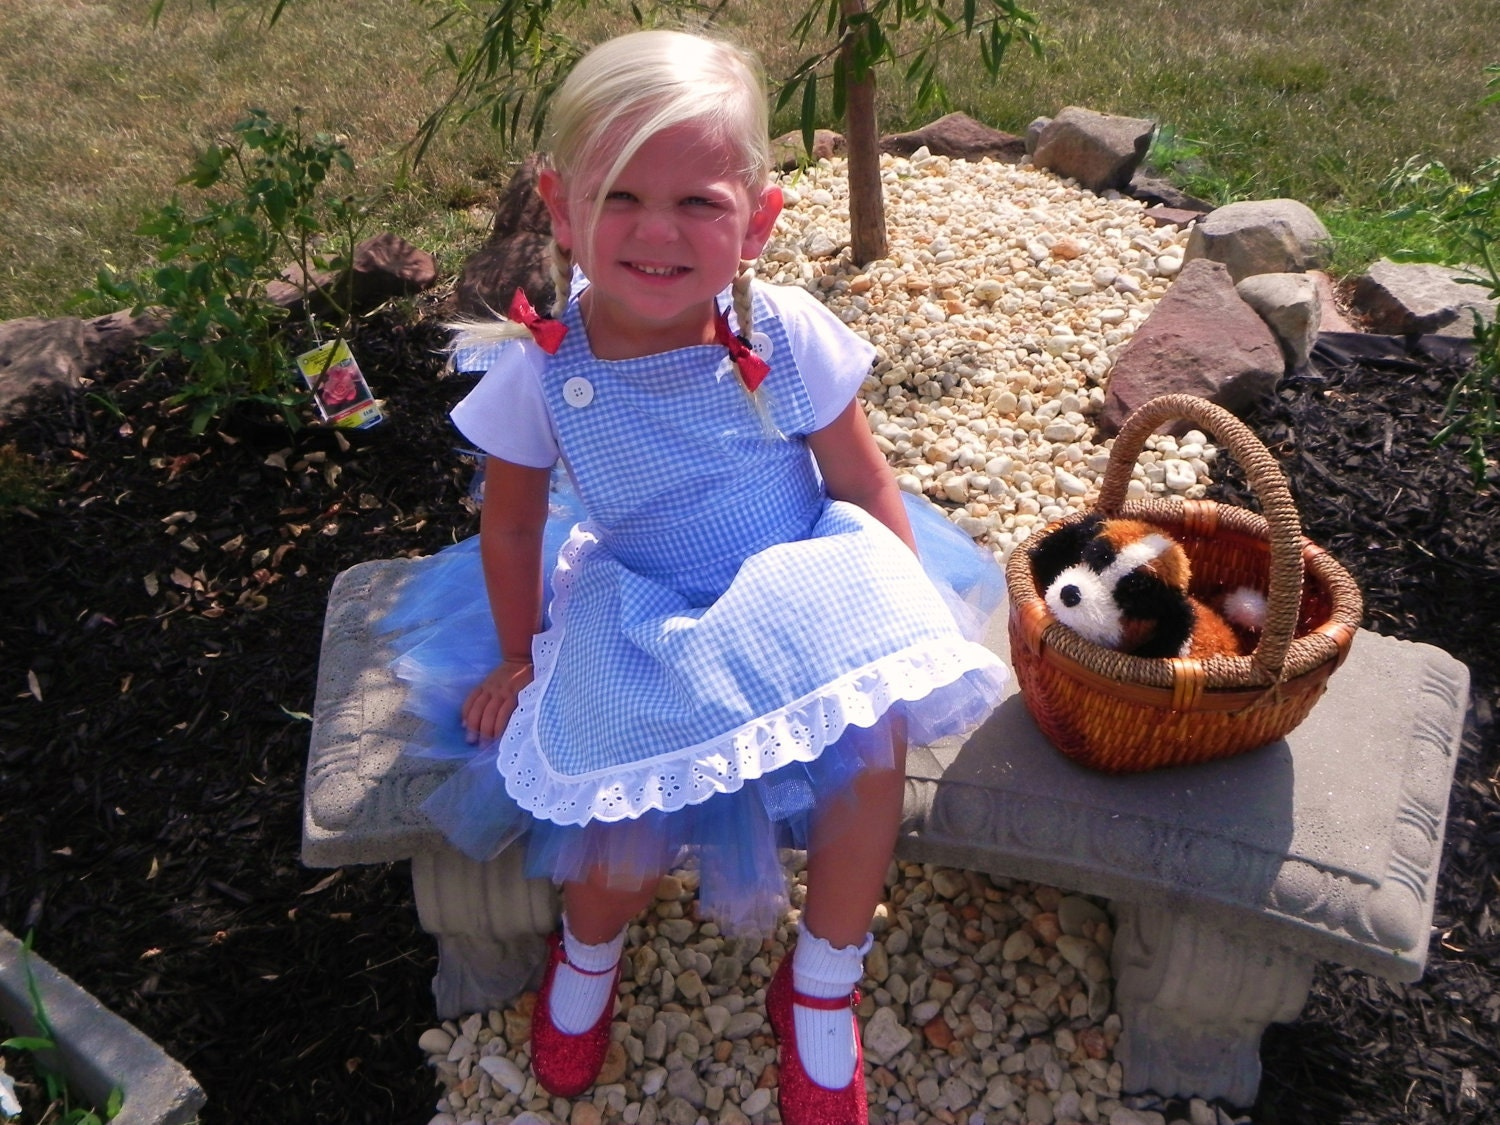 Dorothy Wizard of oz Costume Diy images